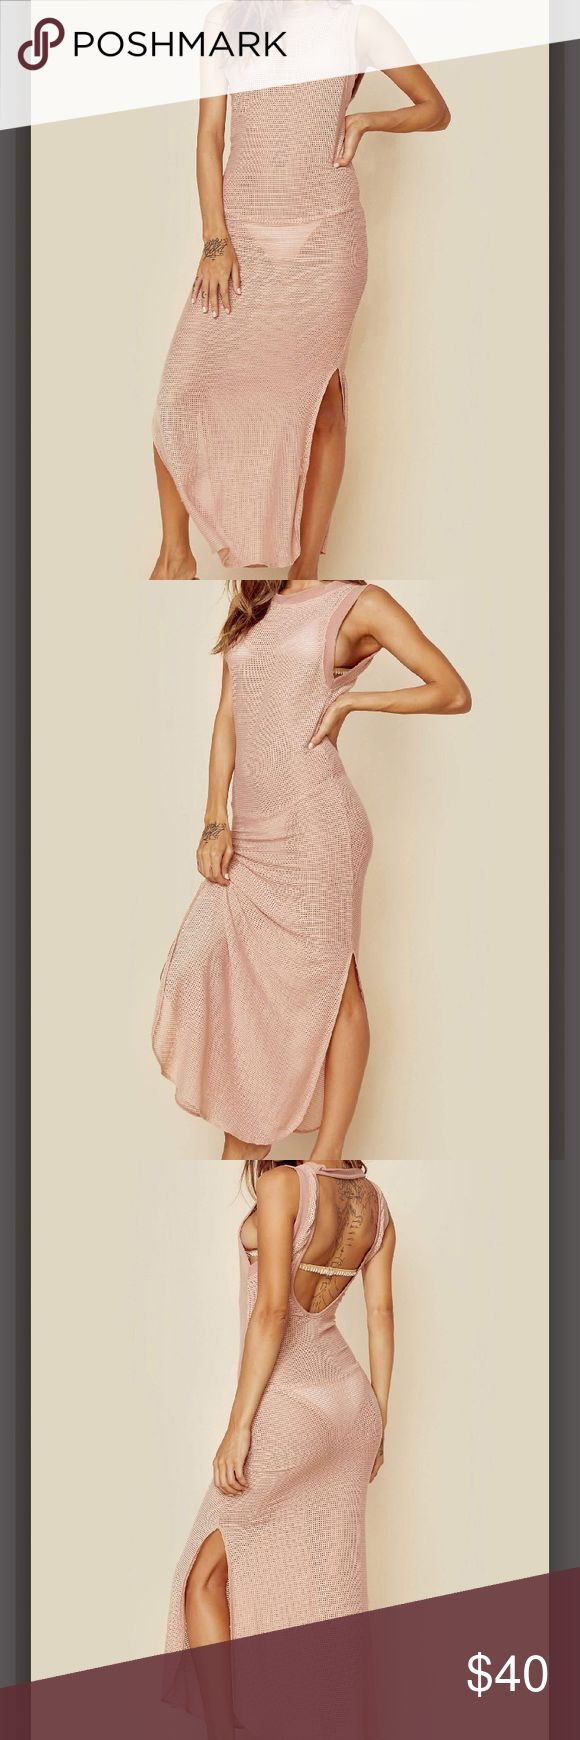 """NWT Beach Riot """"Lex Dress"""" """"Beach Riot's Lex Dress features a nude mesh fabrication and side slits. Perfect for throwing on over a bikini at the beach"""" Beach Riot Dresses Maxi"""